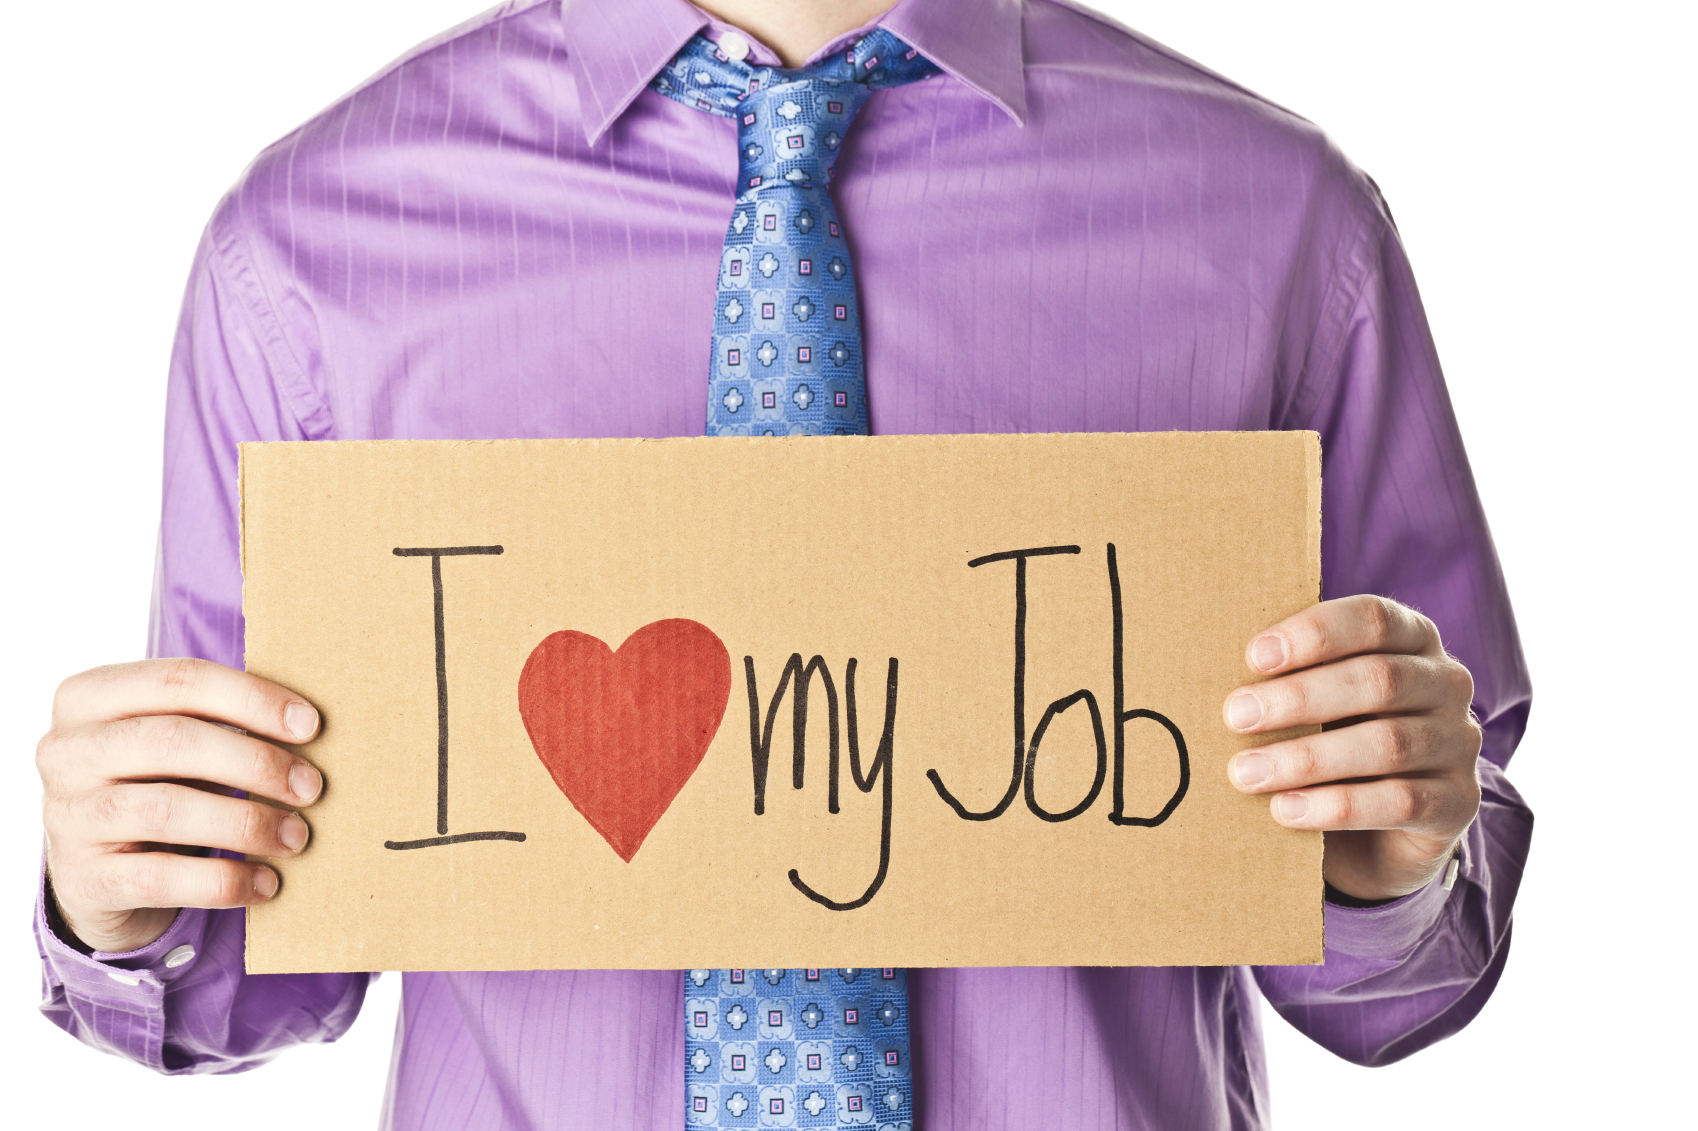 The Satisfaction of employees is what ensures Success of a Business